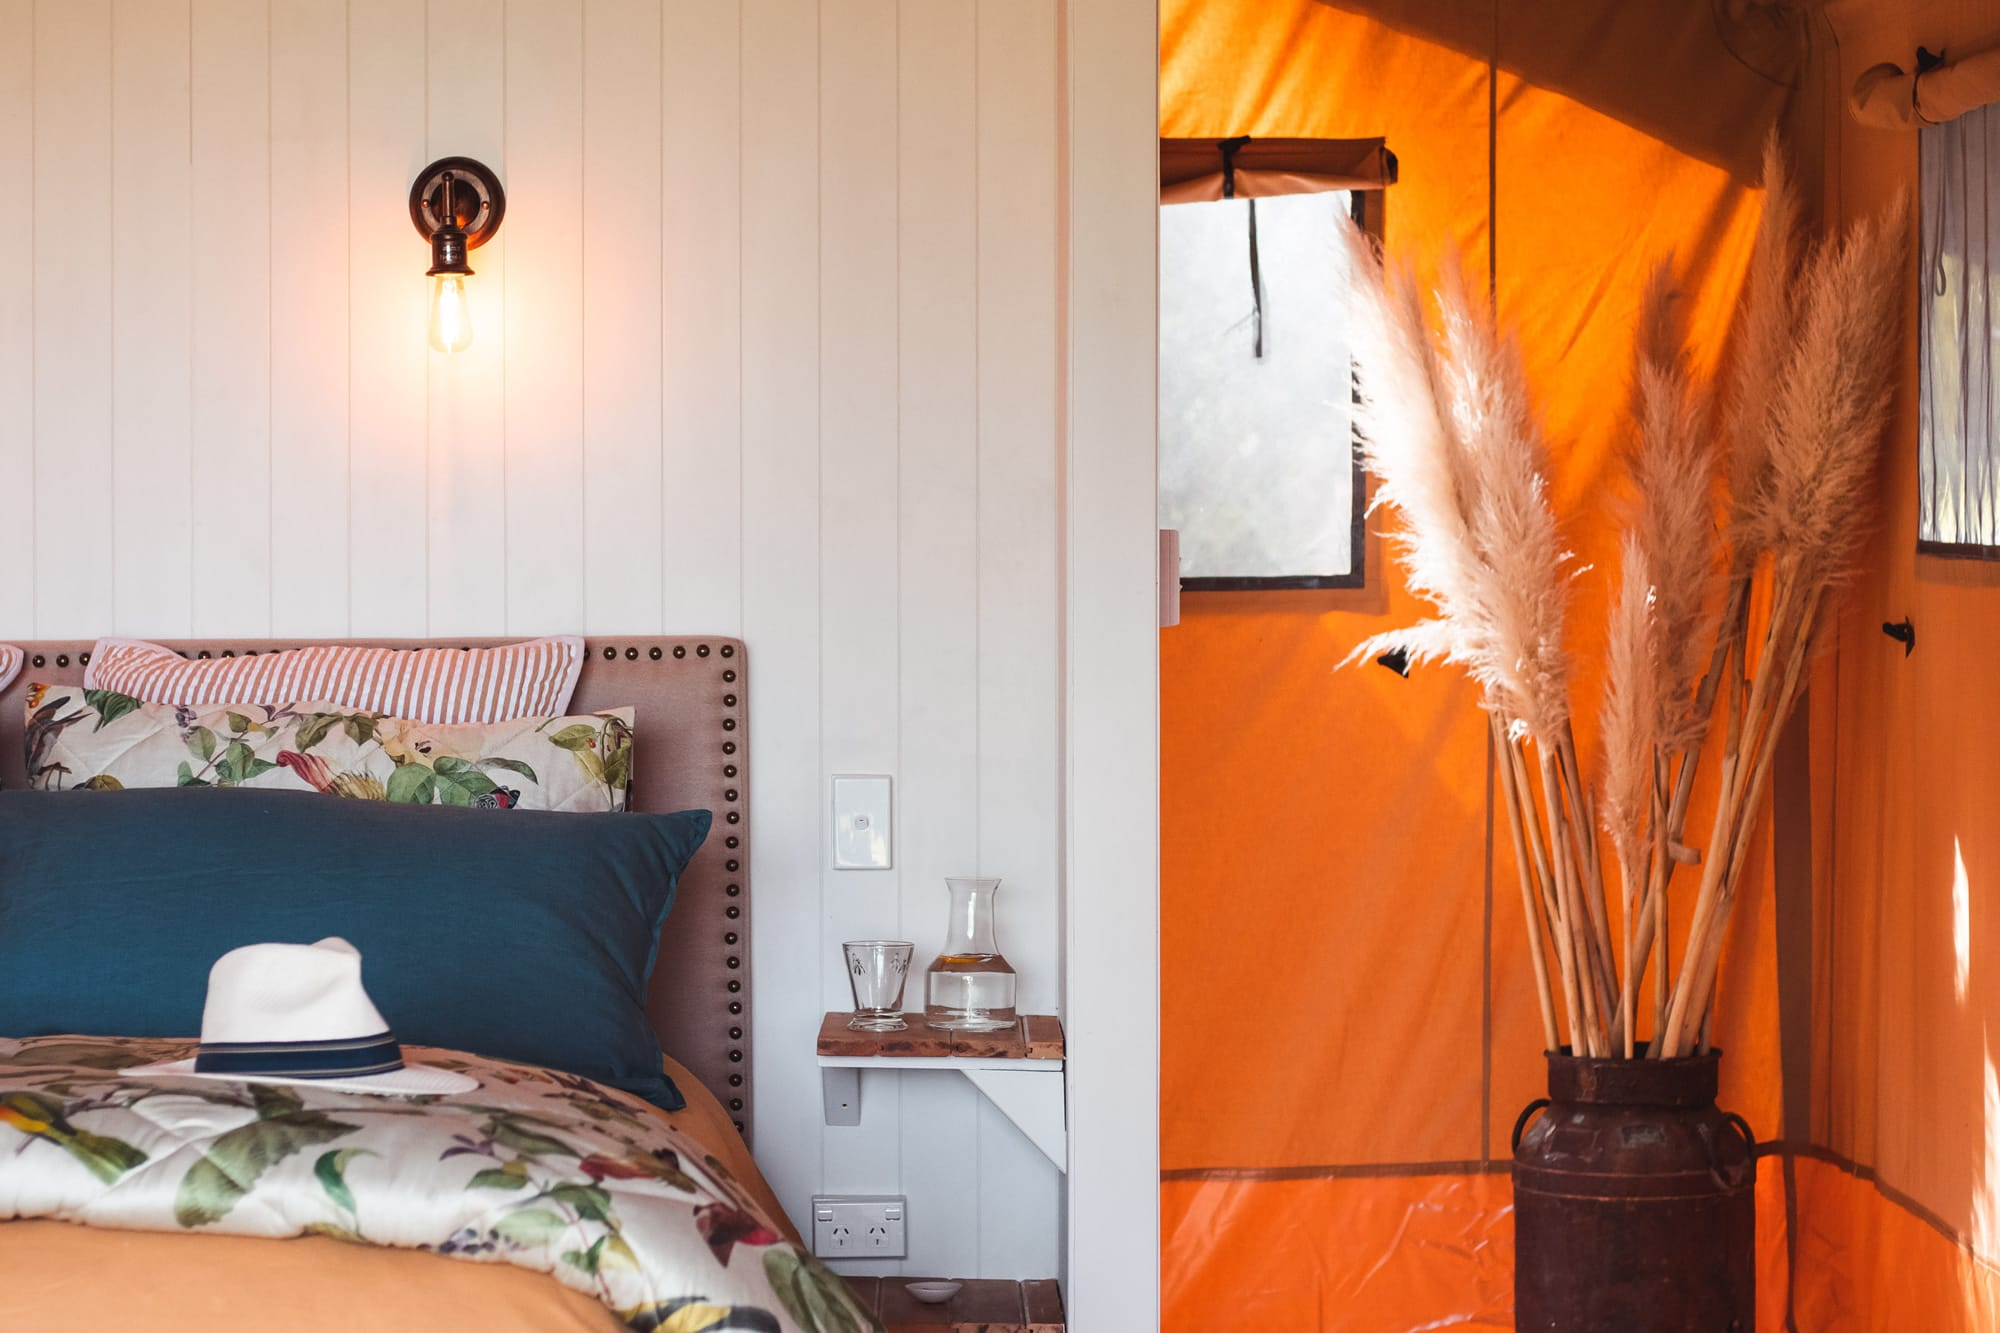 Te-Pamu-Escape-Safari-Tent-Wairarapa-Bed_1546.jpg